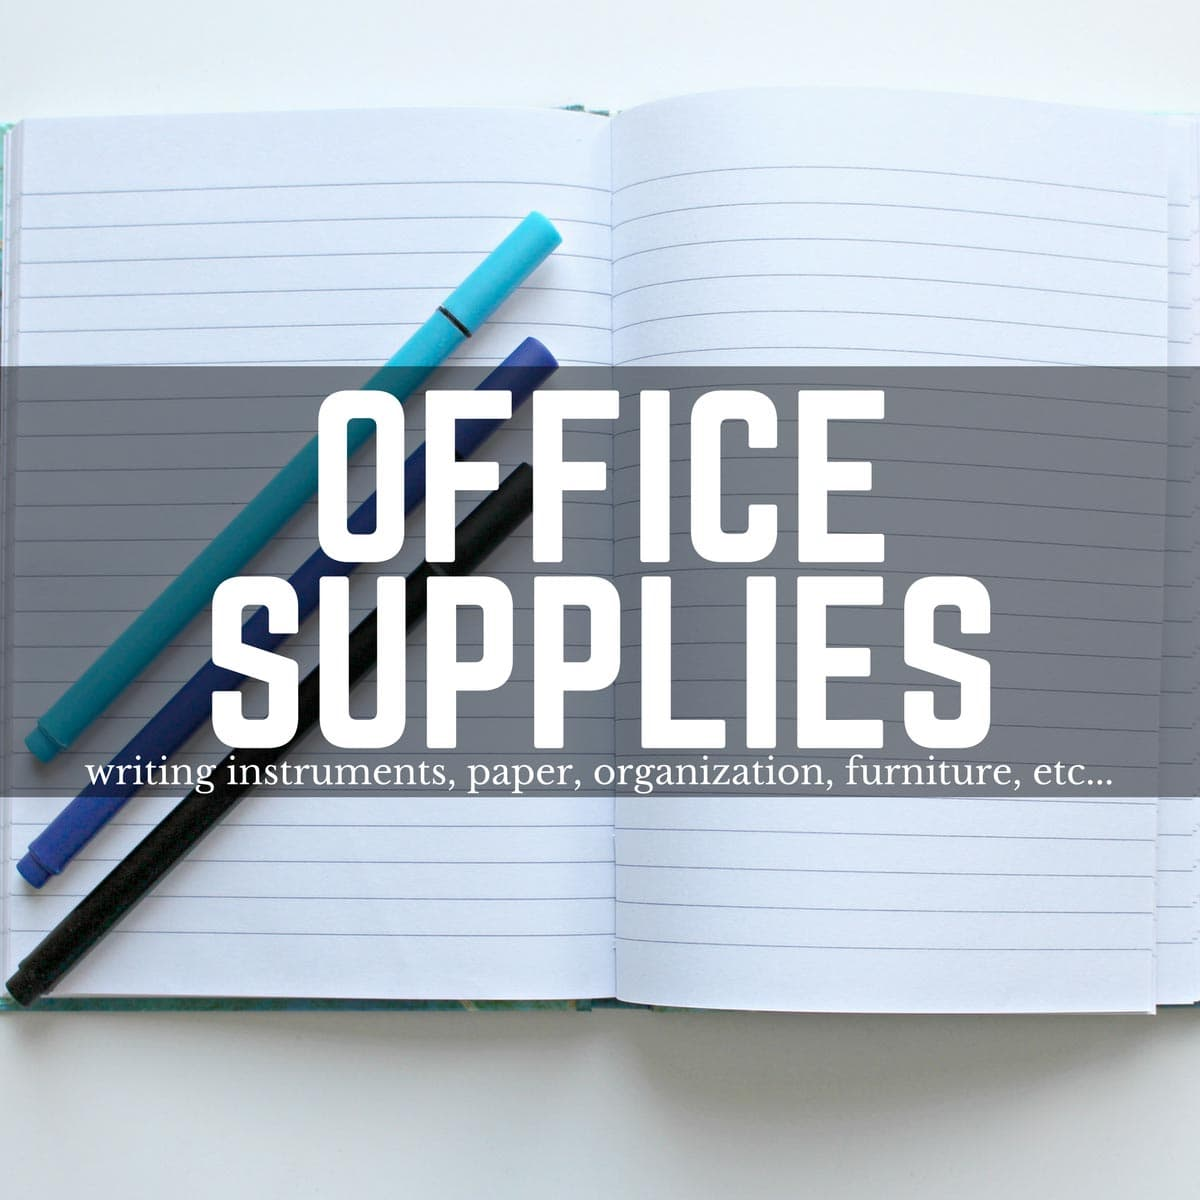 american made office supplies, made in usa office supplies, american made pens, made in usa pens, american made paper products, made in usa paper products, american made office furniture, made in usa office furniture, american made notebook, made in usa notebook, american made pencils, made in usa pencils, american made eraser, made in usa eraser, american made scissors, made in usa scissors, american made tape, made in usa tape, american made stapler, made in usa stapler, american made post it notes, made in usa post it notes, american made crayons, made in usa crayons, american made calendars, made in usa calendars, made in usa office, american made office